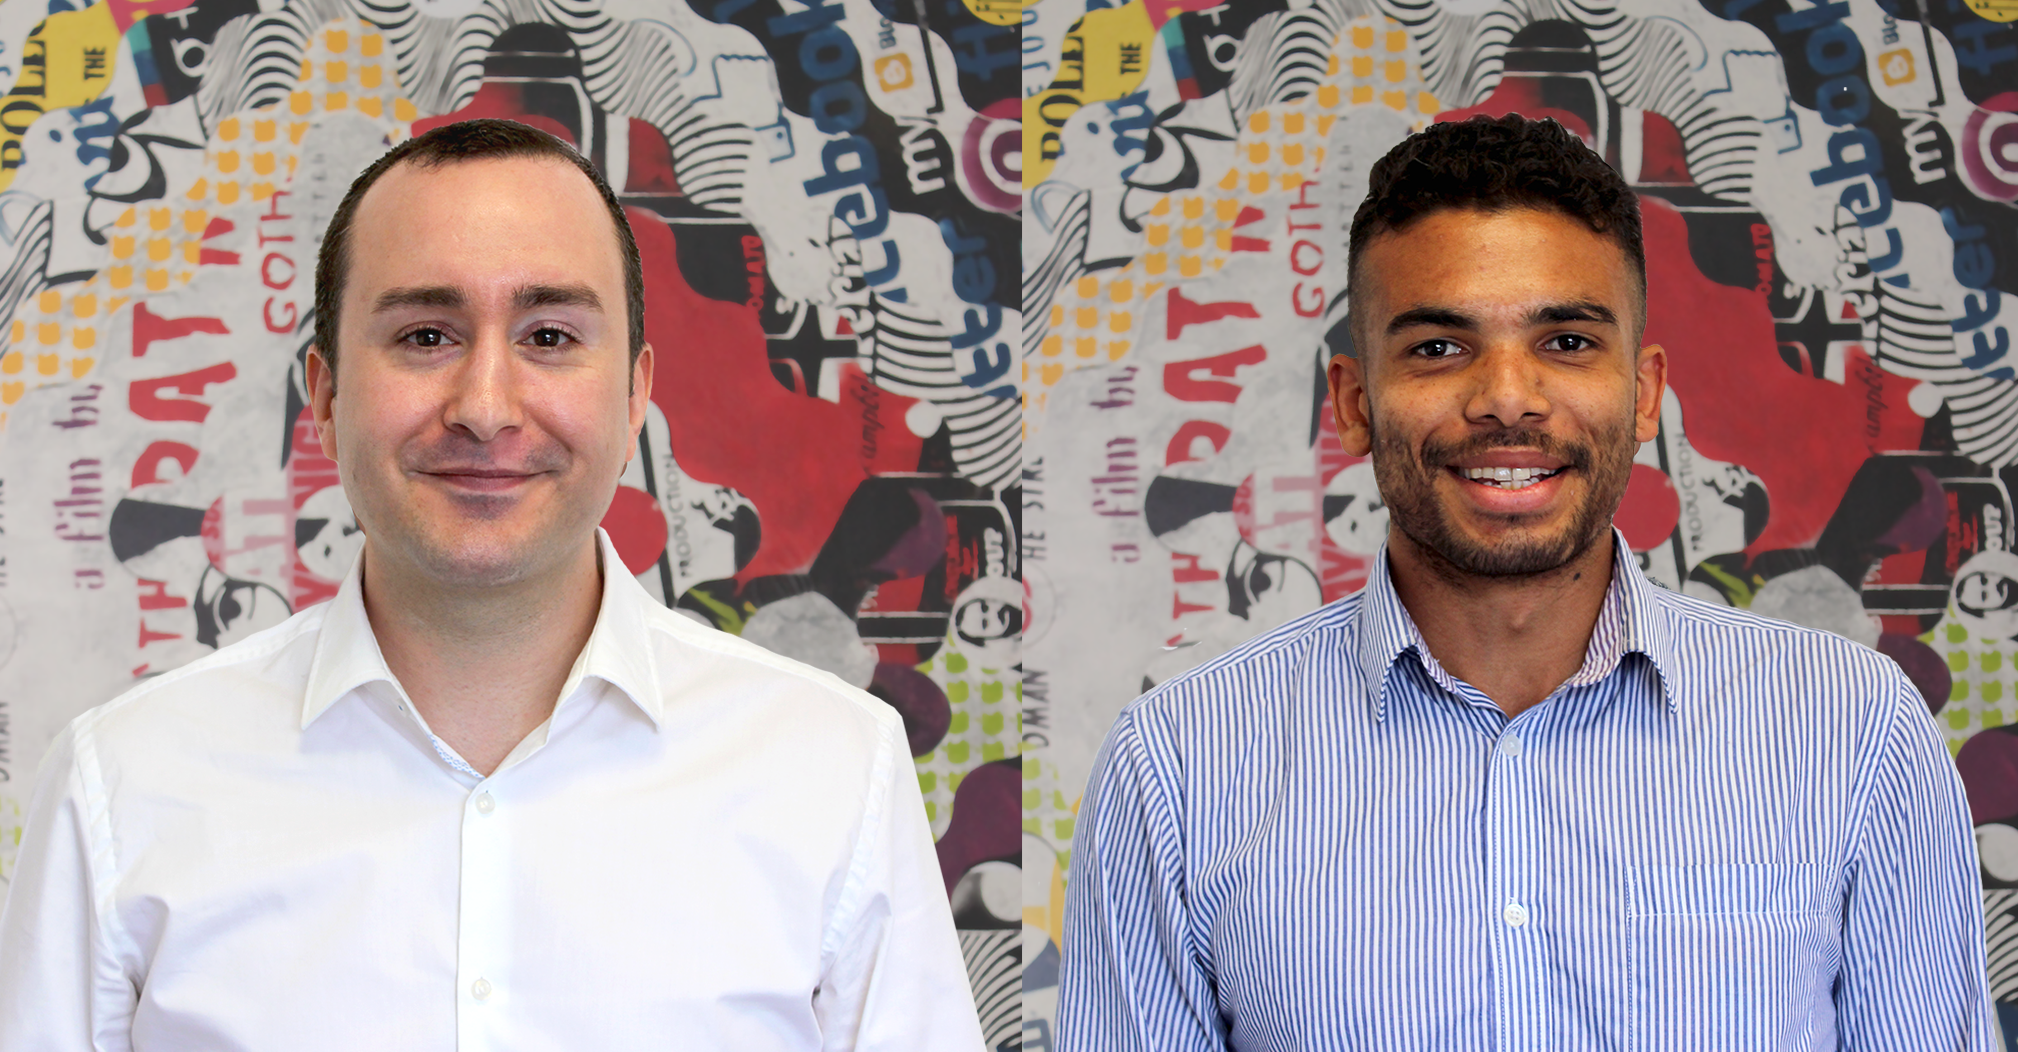 Coull people - Jamie and Arron, new team members